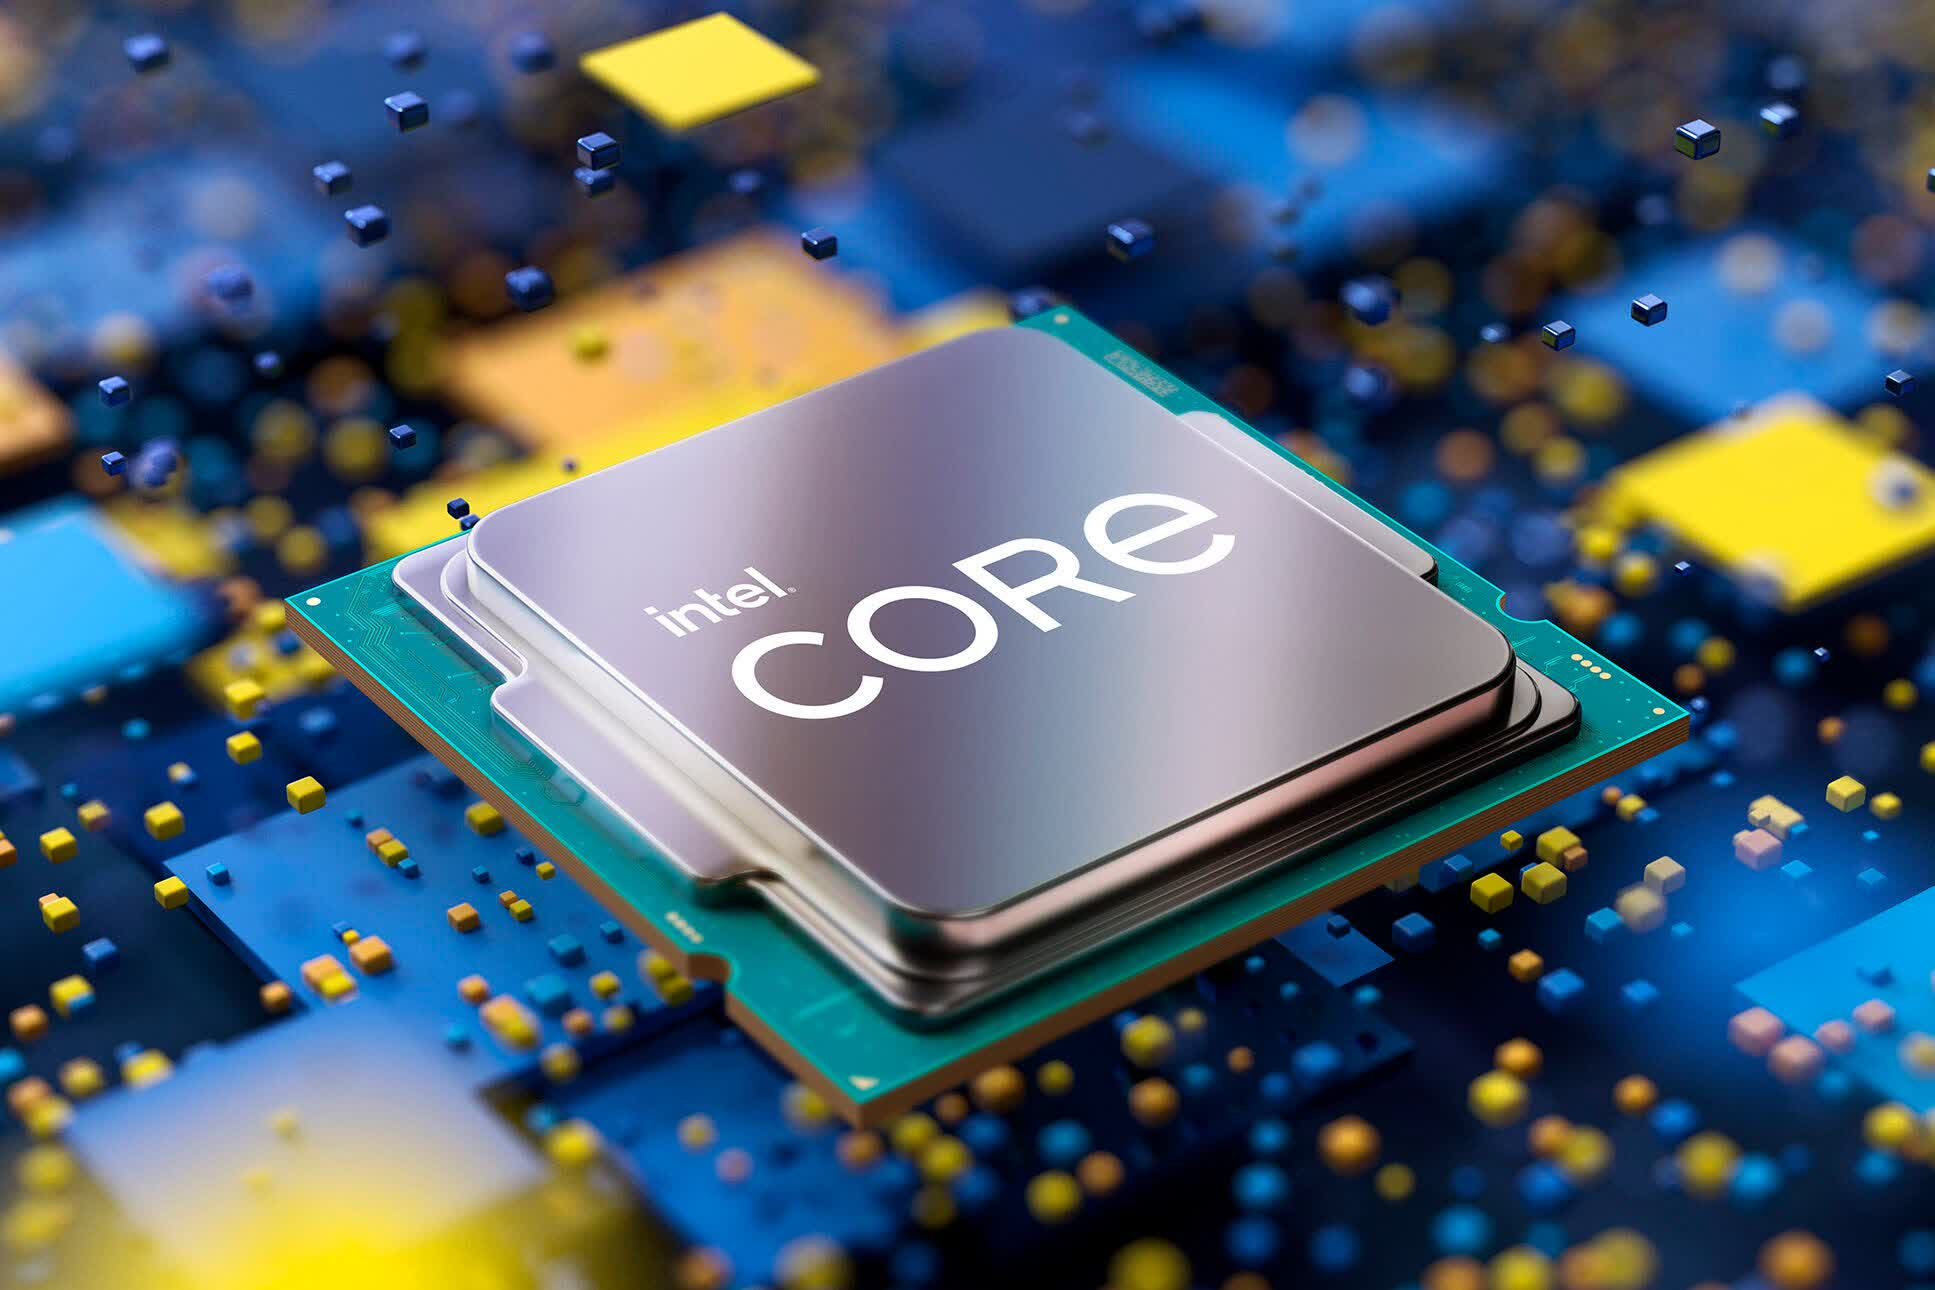 The first 12th-gen Intel Alder Lake CPUs to hit the market will target enthusiasts